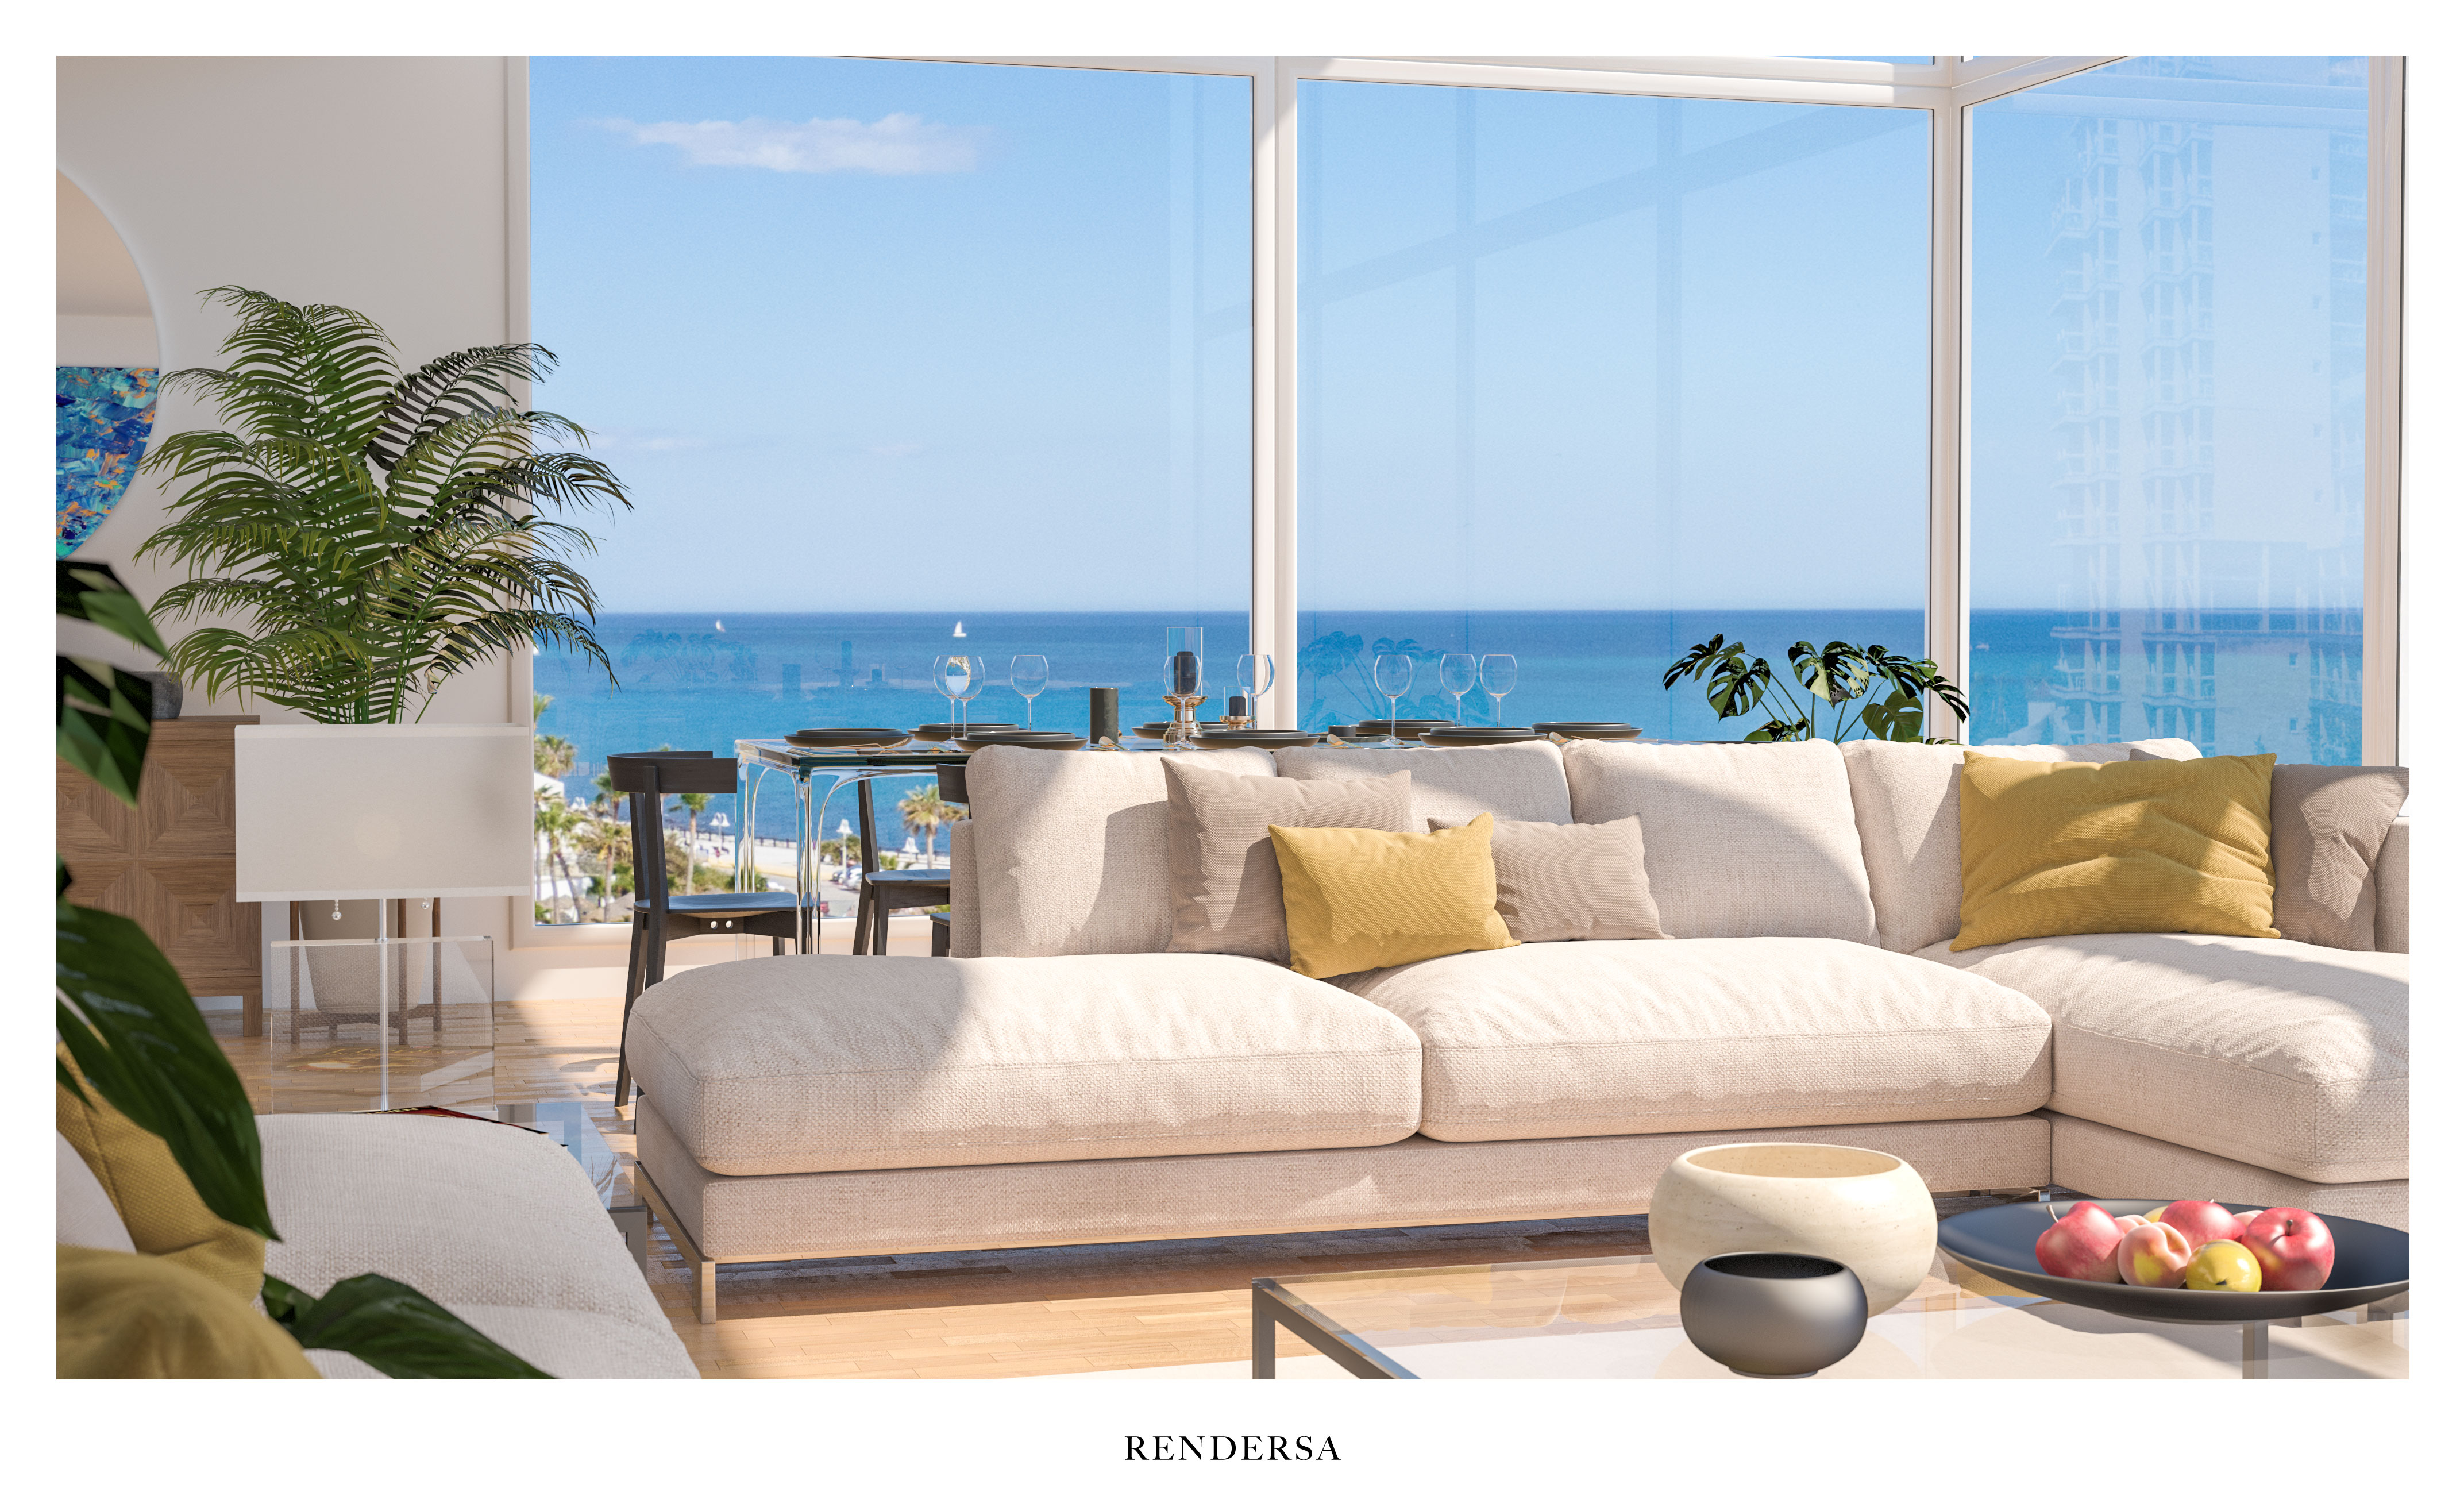 3D Architectural Rendering Living Room South Beach, Miami Beach